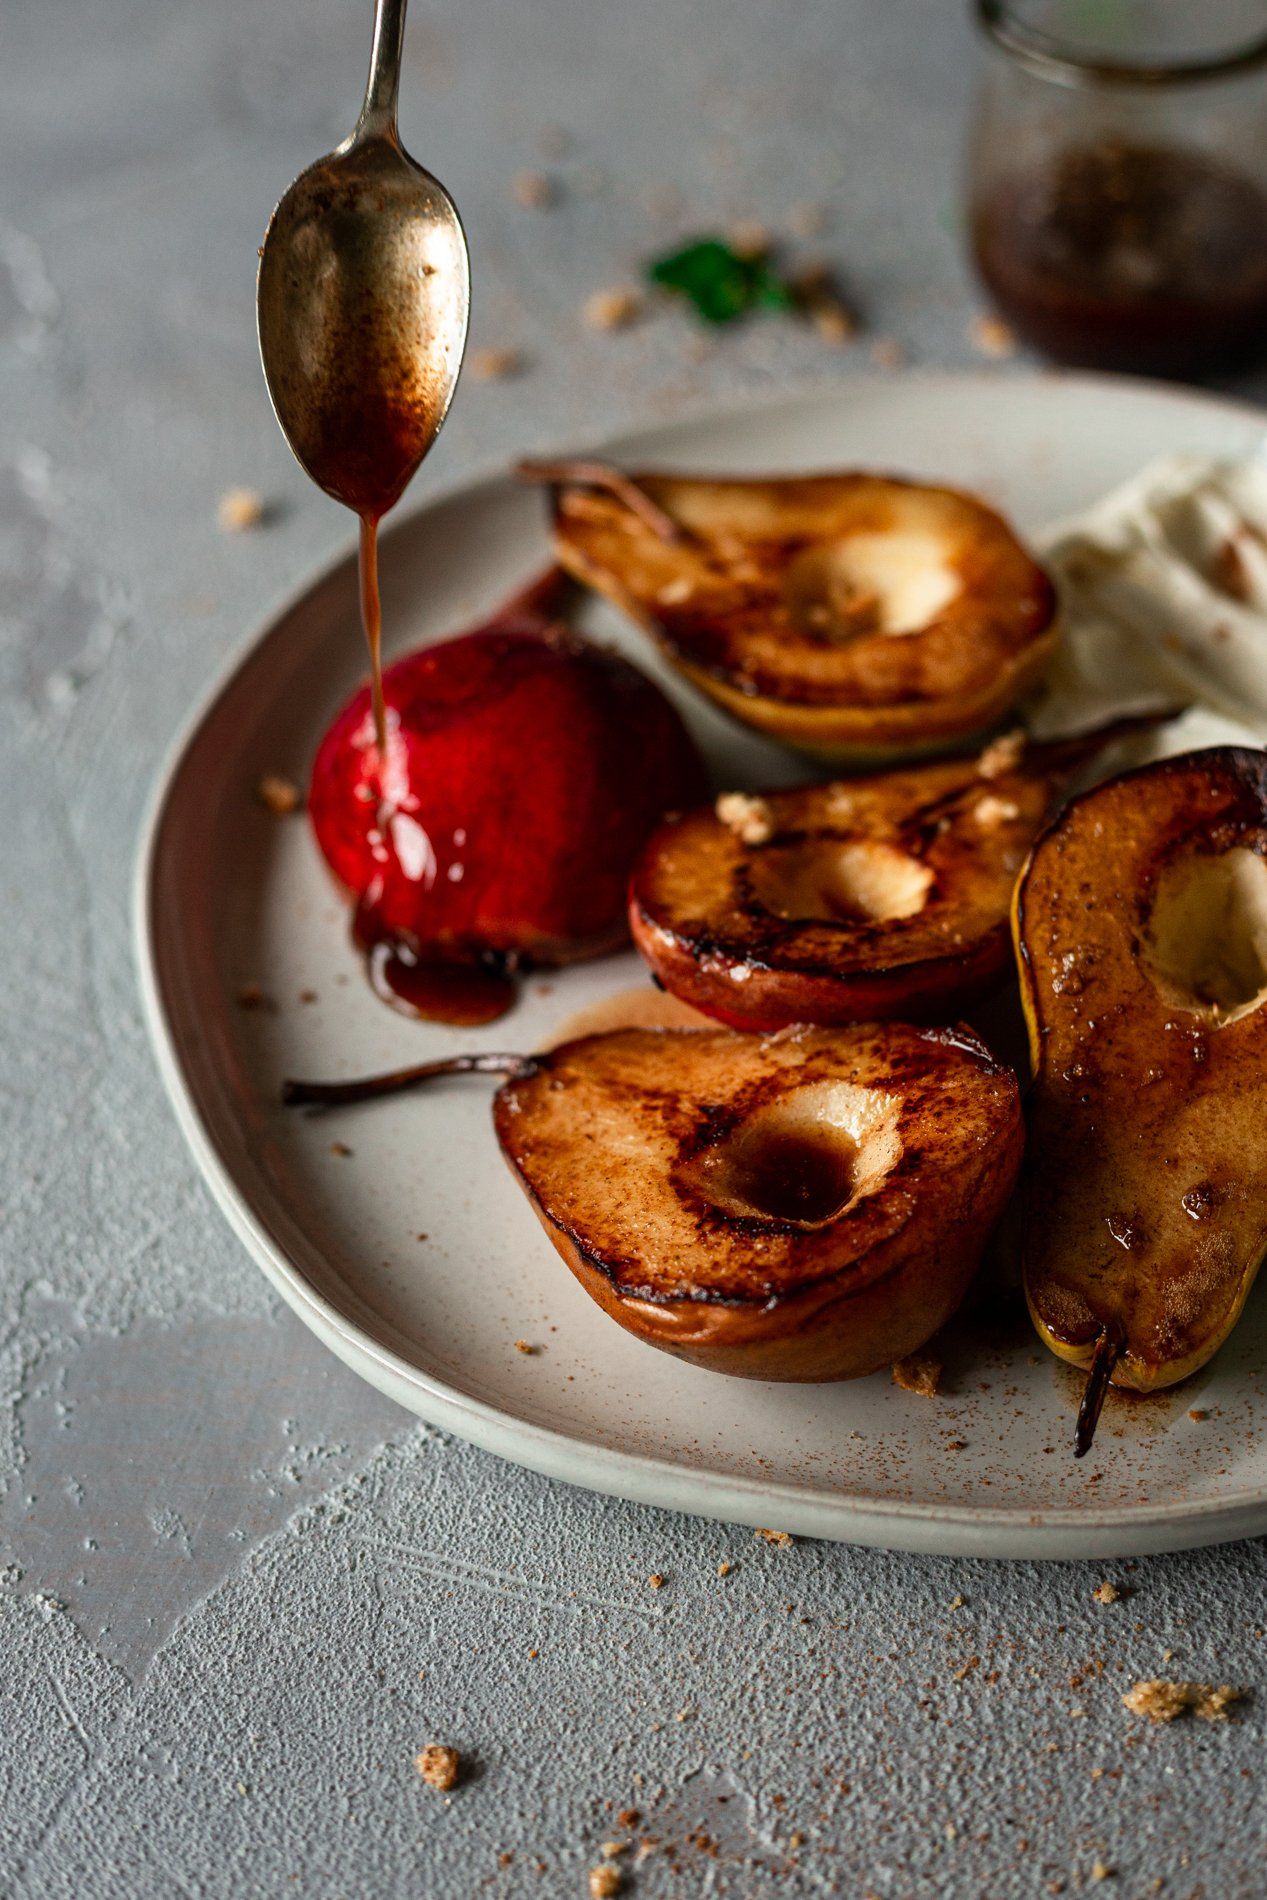 angled view of roasted pears with honey-spiced browned butter being drizzled on them